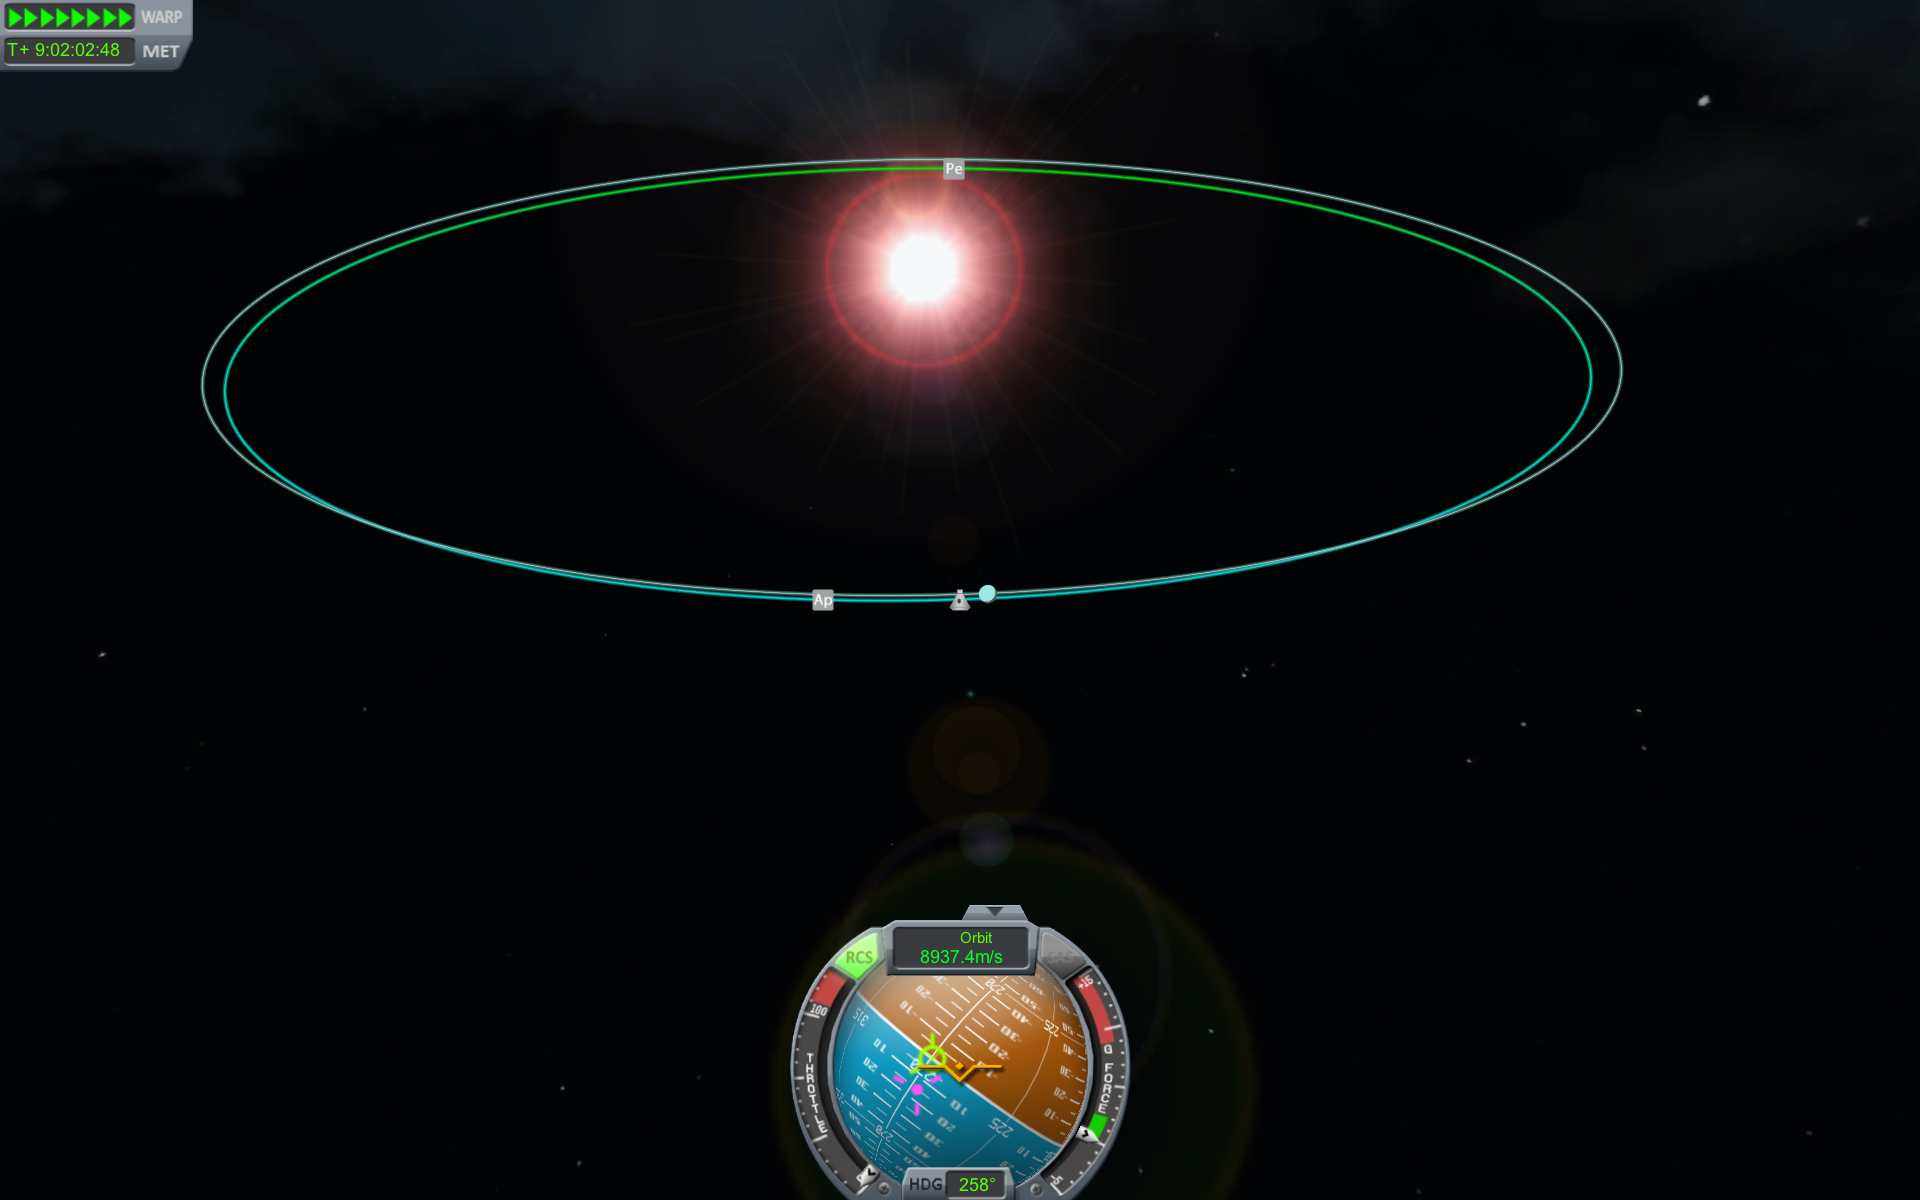 kerbal space program sun - photo #8